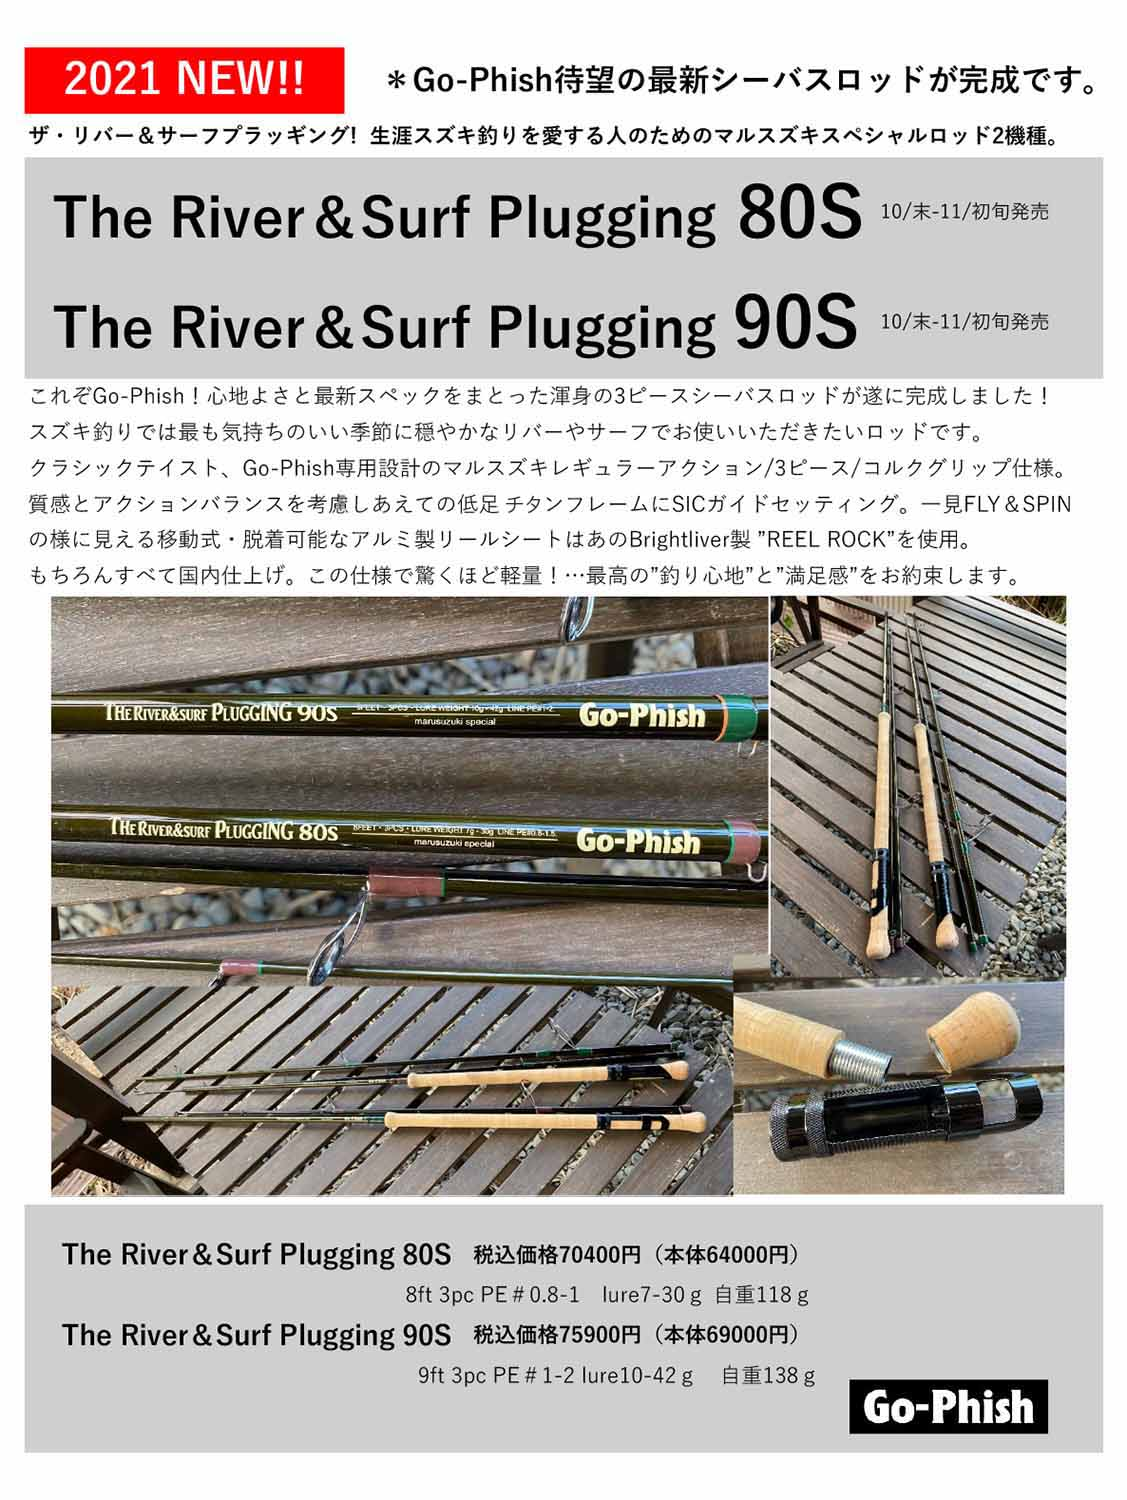 The River & Surf Plugging 80S/90S